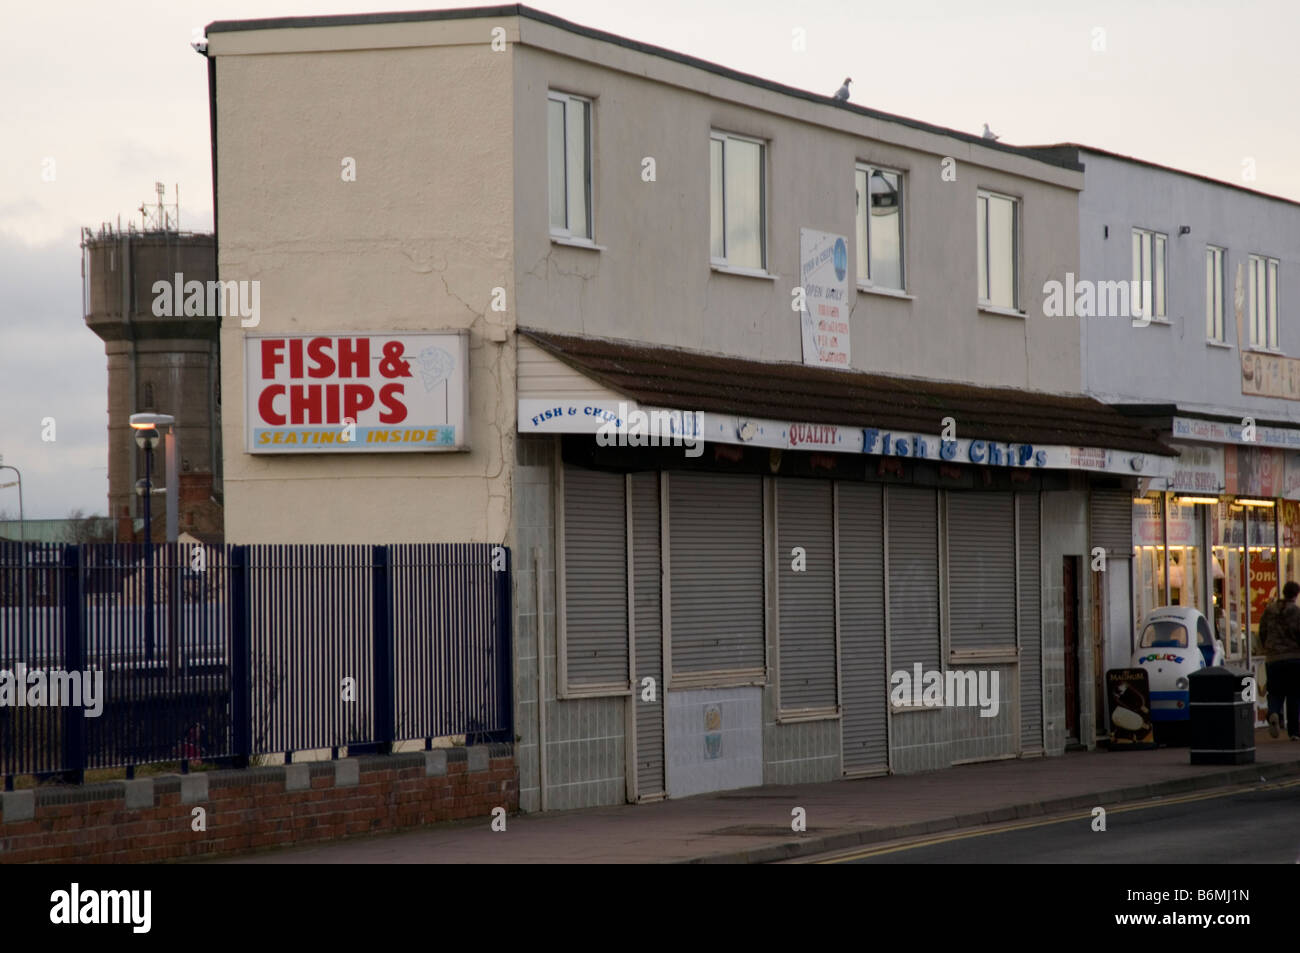 british seaside resort closed for winter boarded up shop retail outlet close uk gb - Stock Image